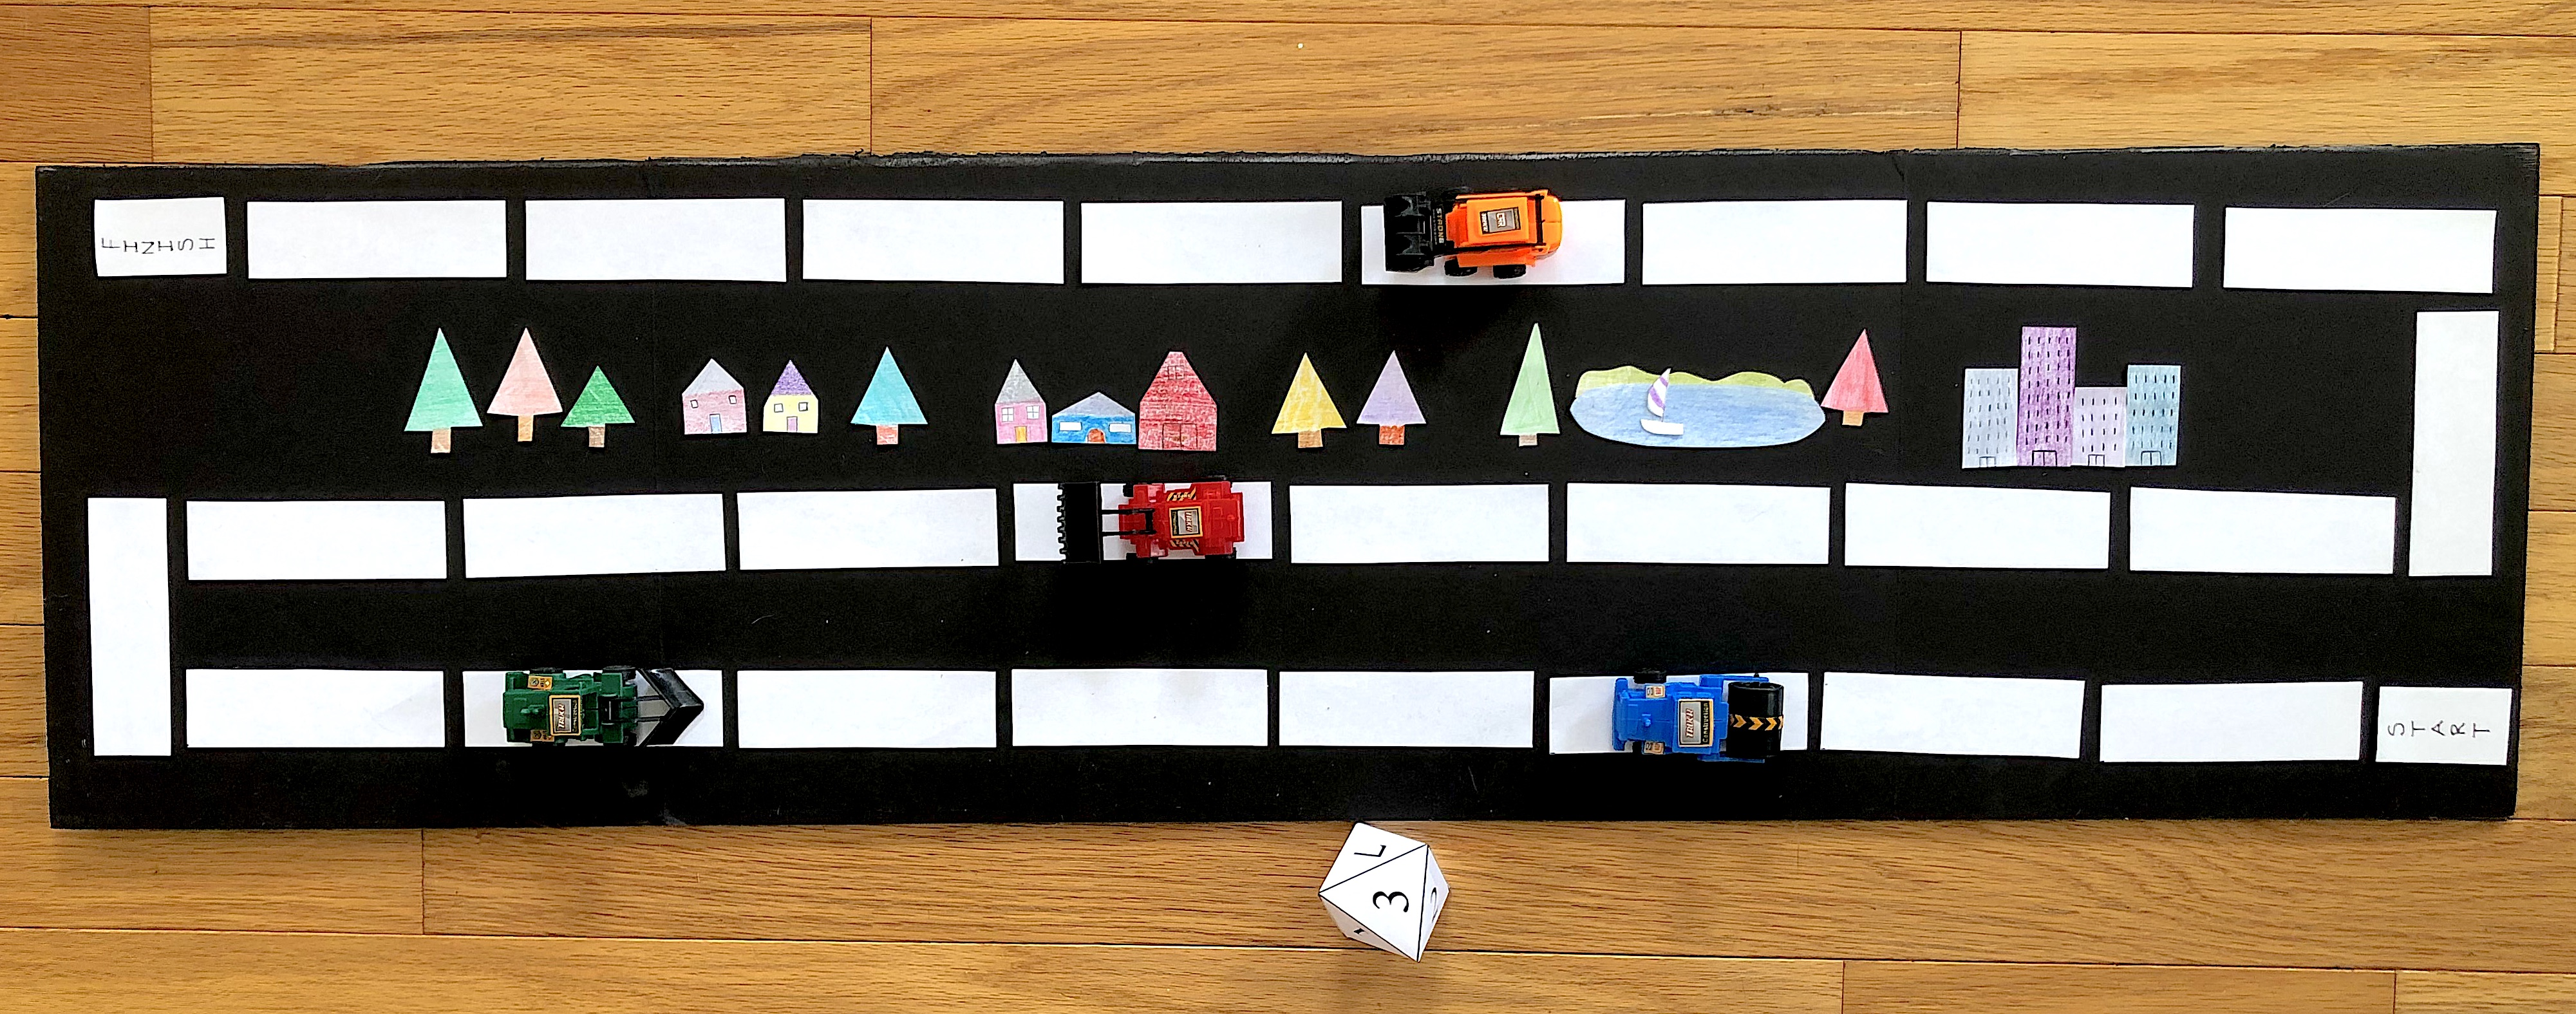 celebrate-picture-books-picture-book-review-truck-racing-game-wood